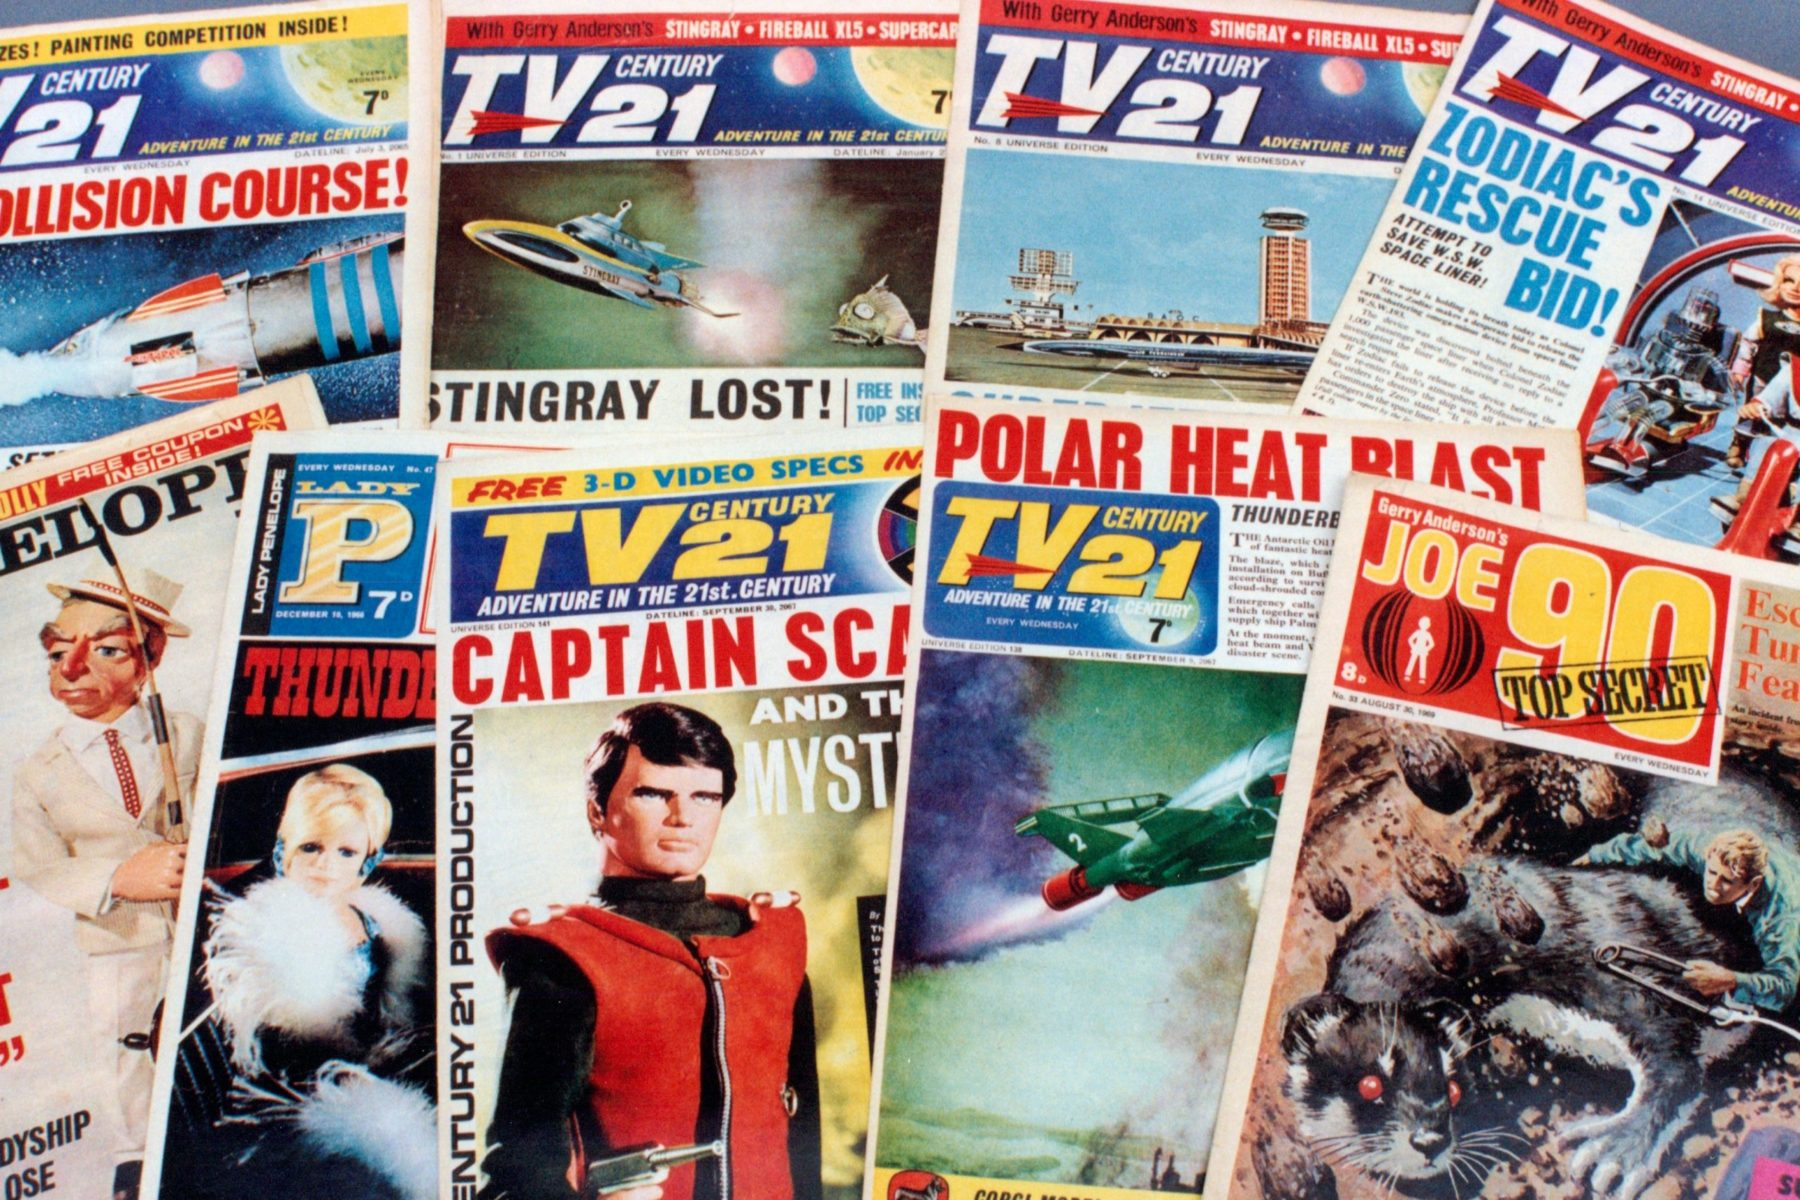 TV Century 21 comic launches. Conceived of as a newspaper for children it featured a 'stop press' front page with news items and photographs. It soon had a circulation of over 1 million copies per week.